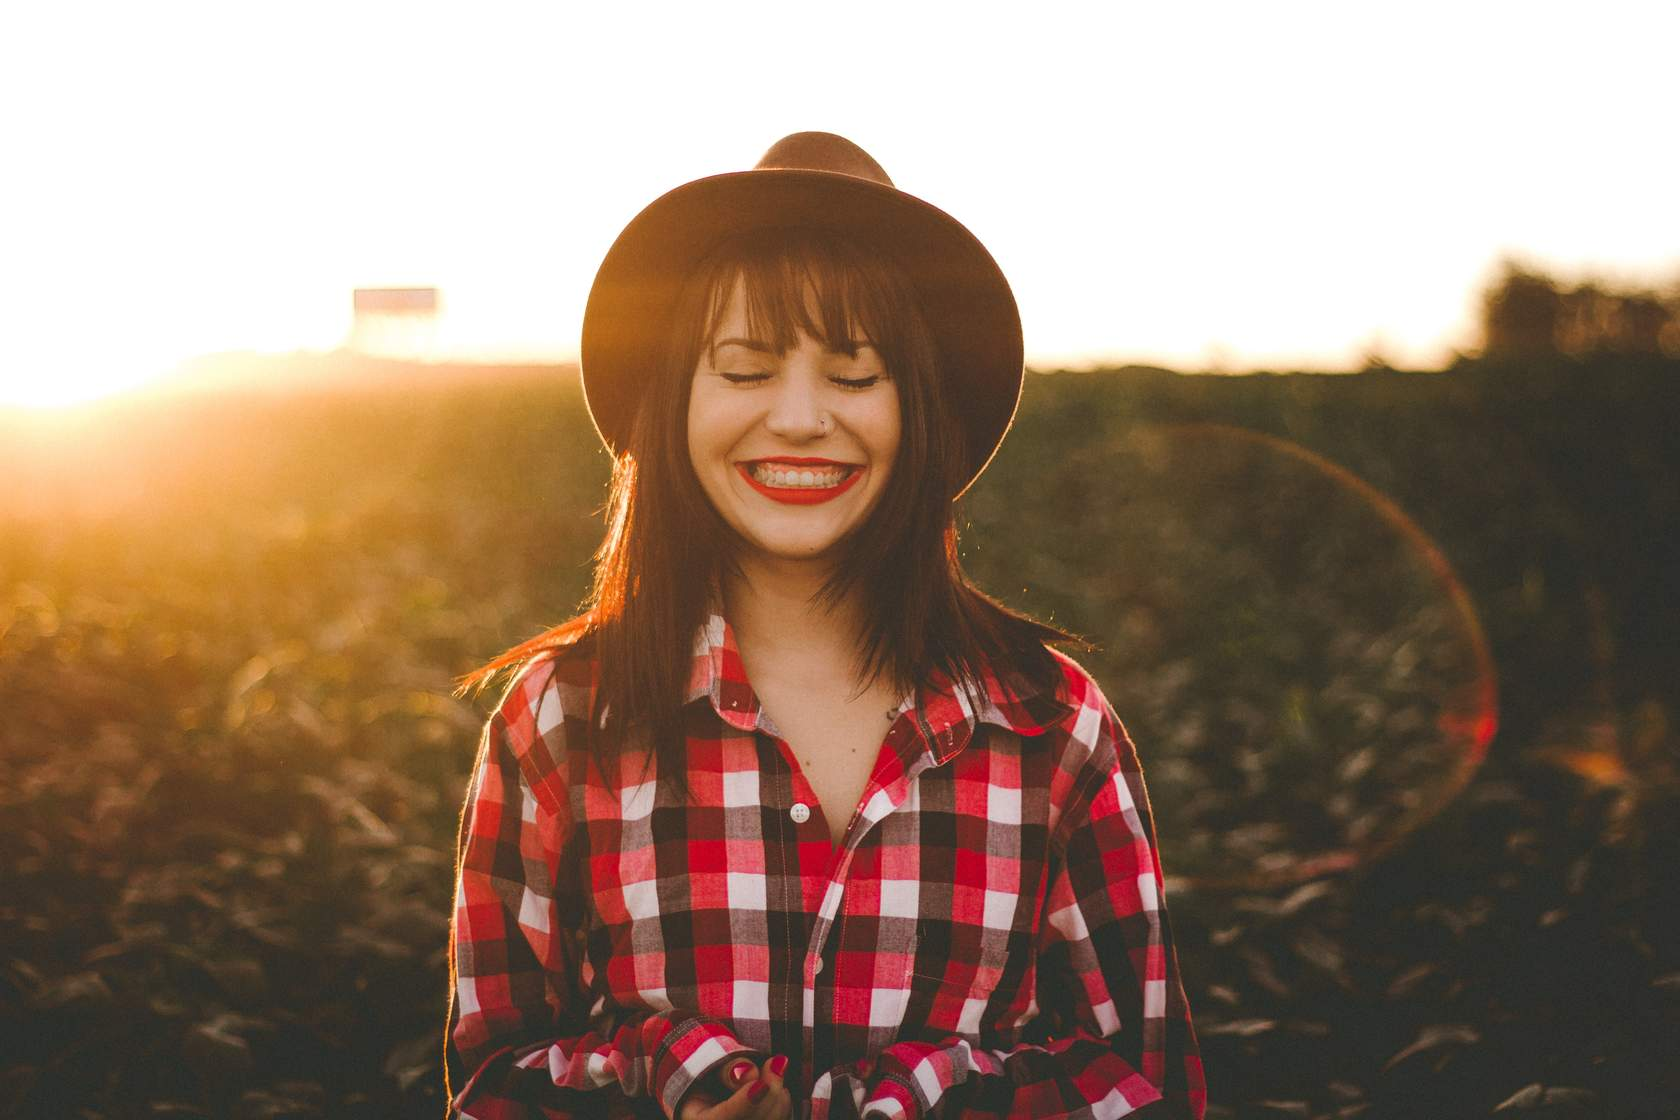 girl in a field smiling